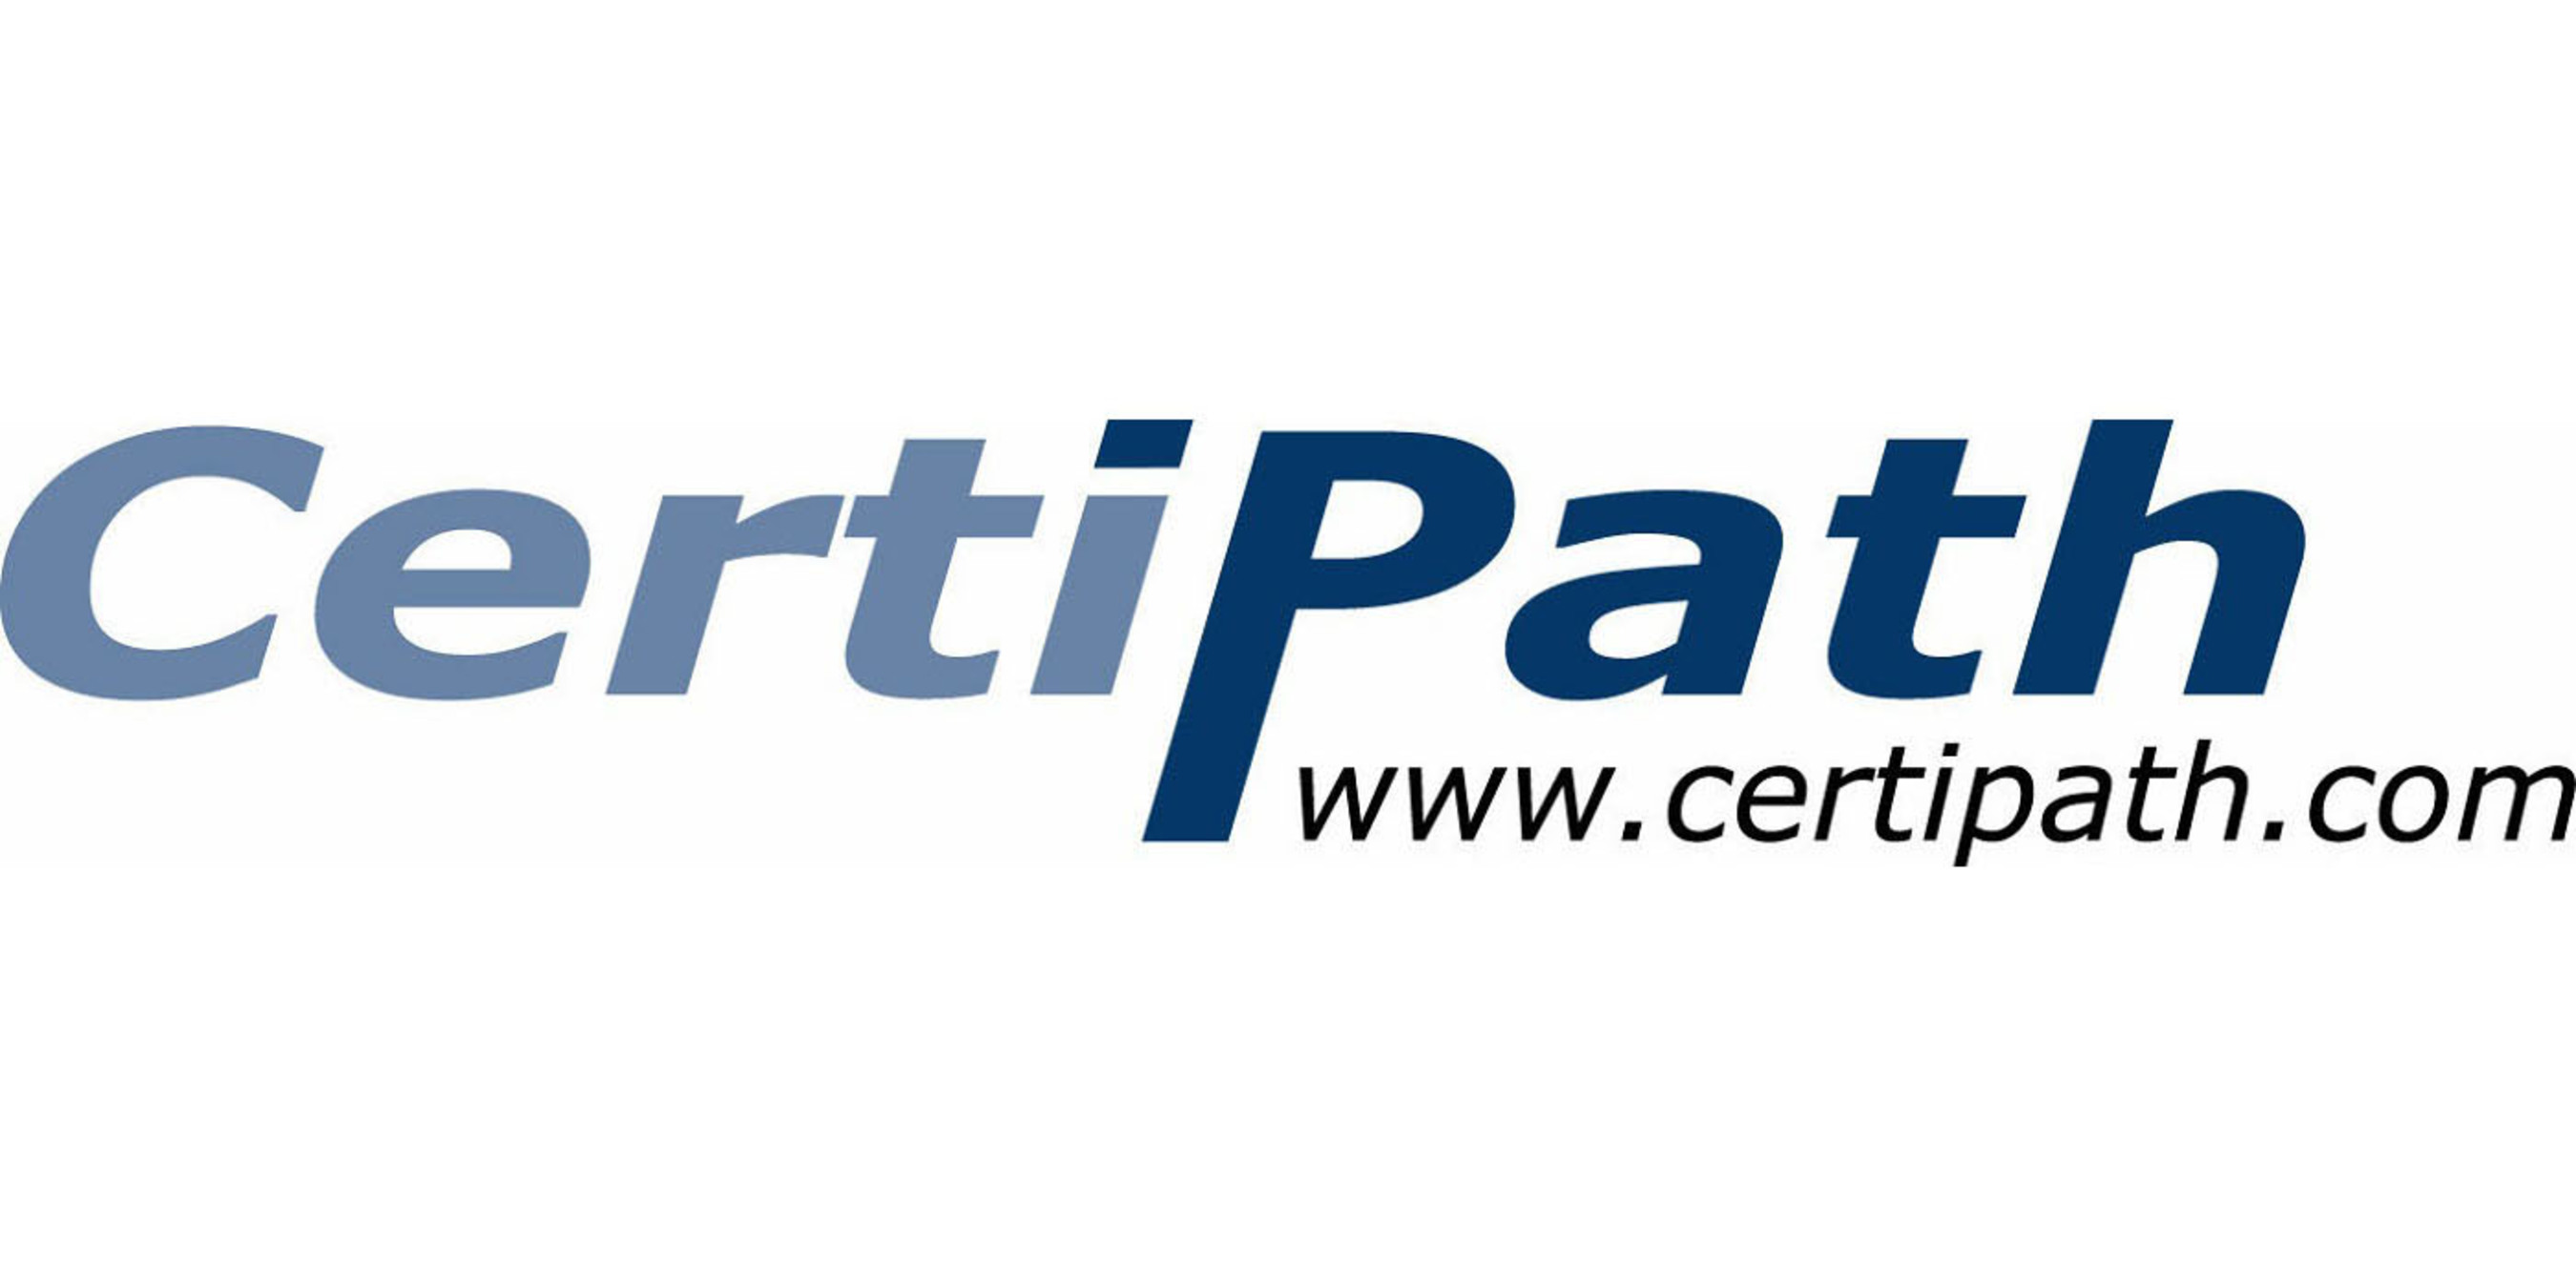 General Services Administration Selects CertiPath's TrustMonitor Platform